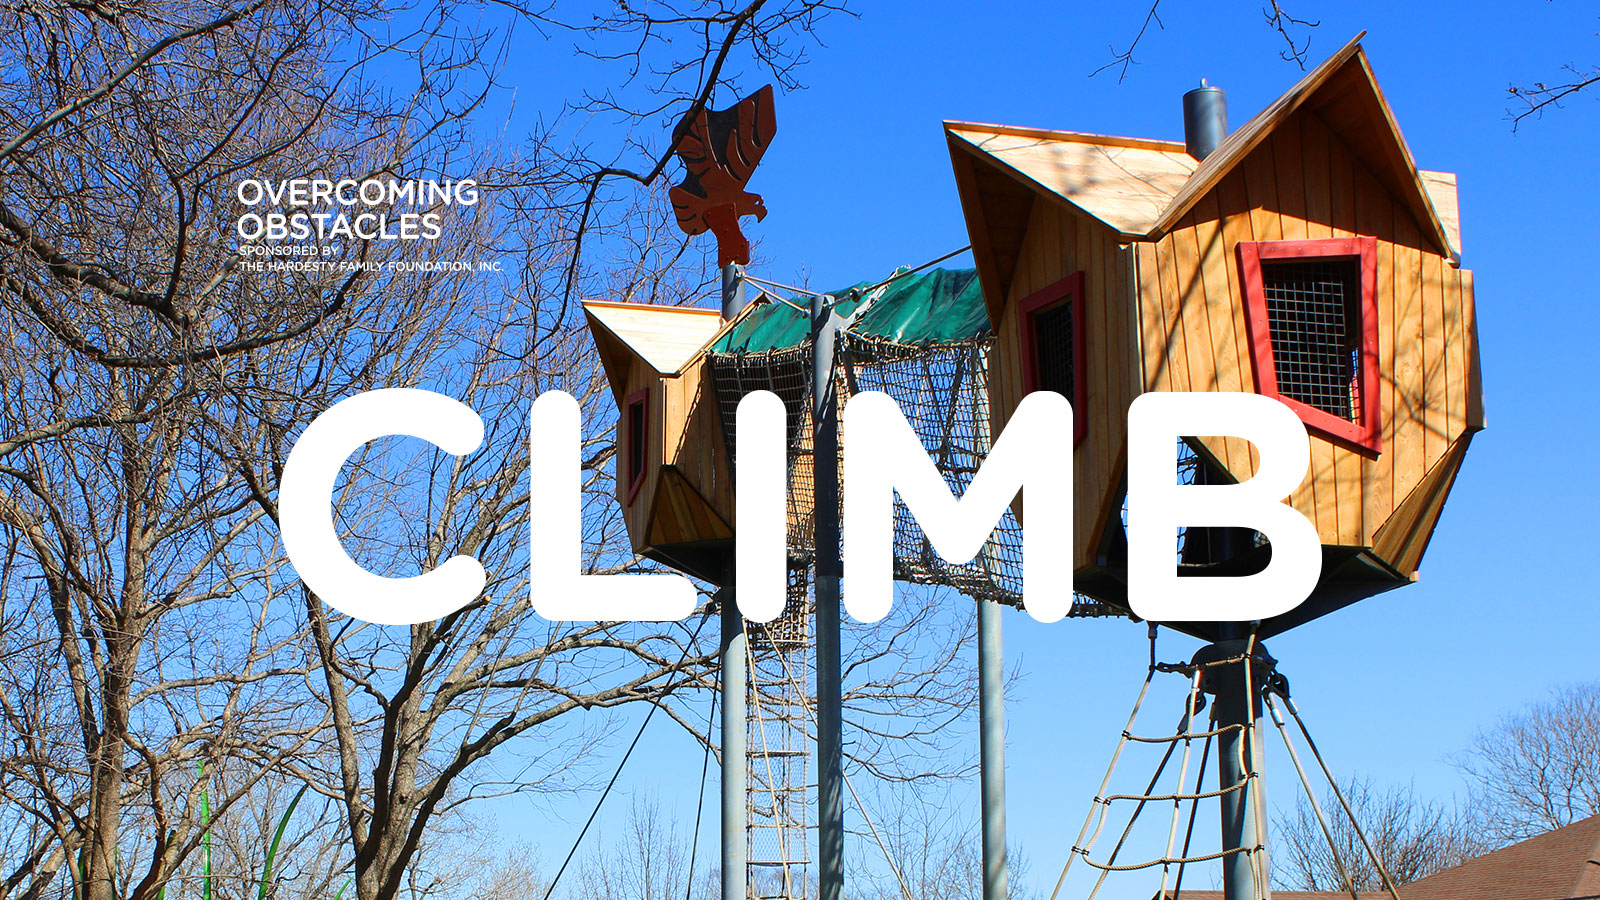 climbing playground equipment